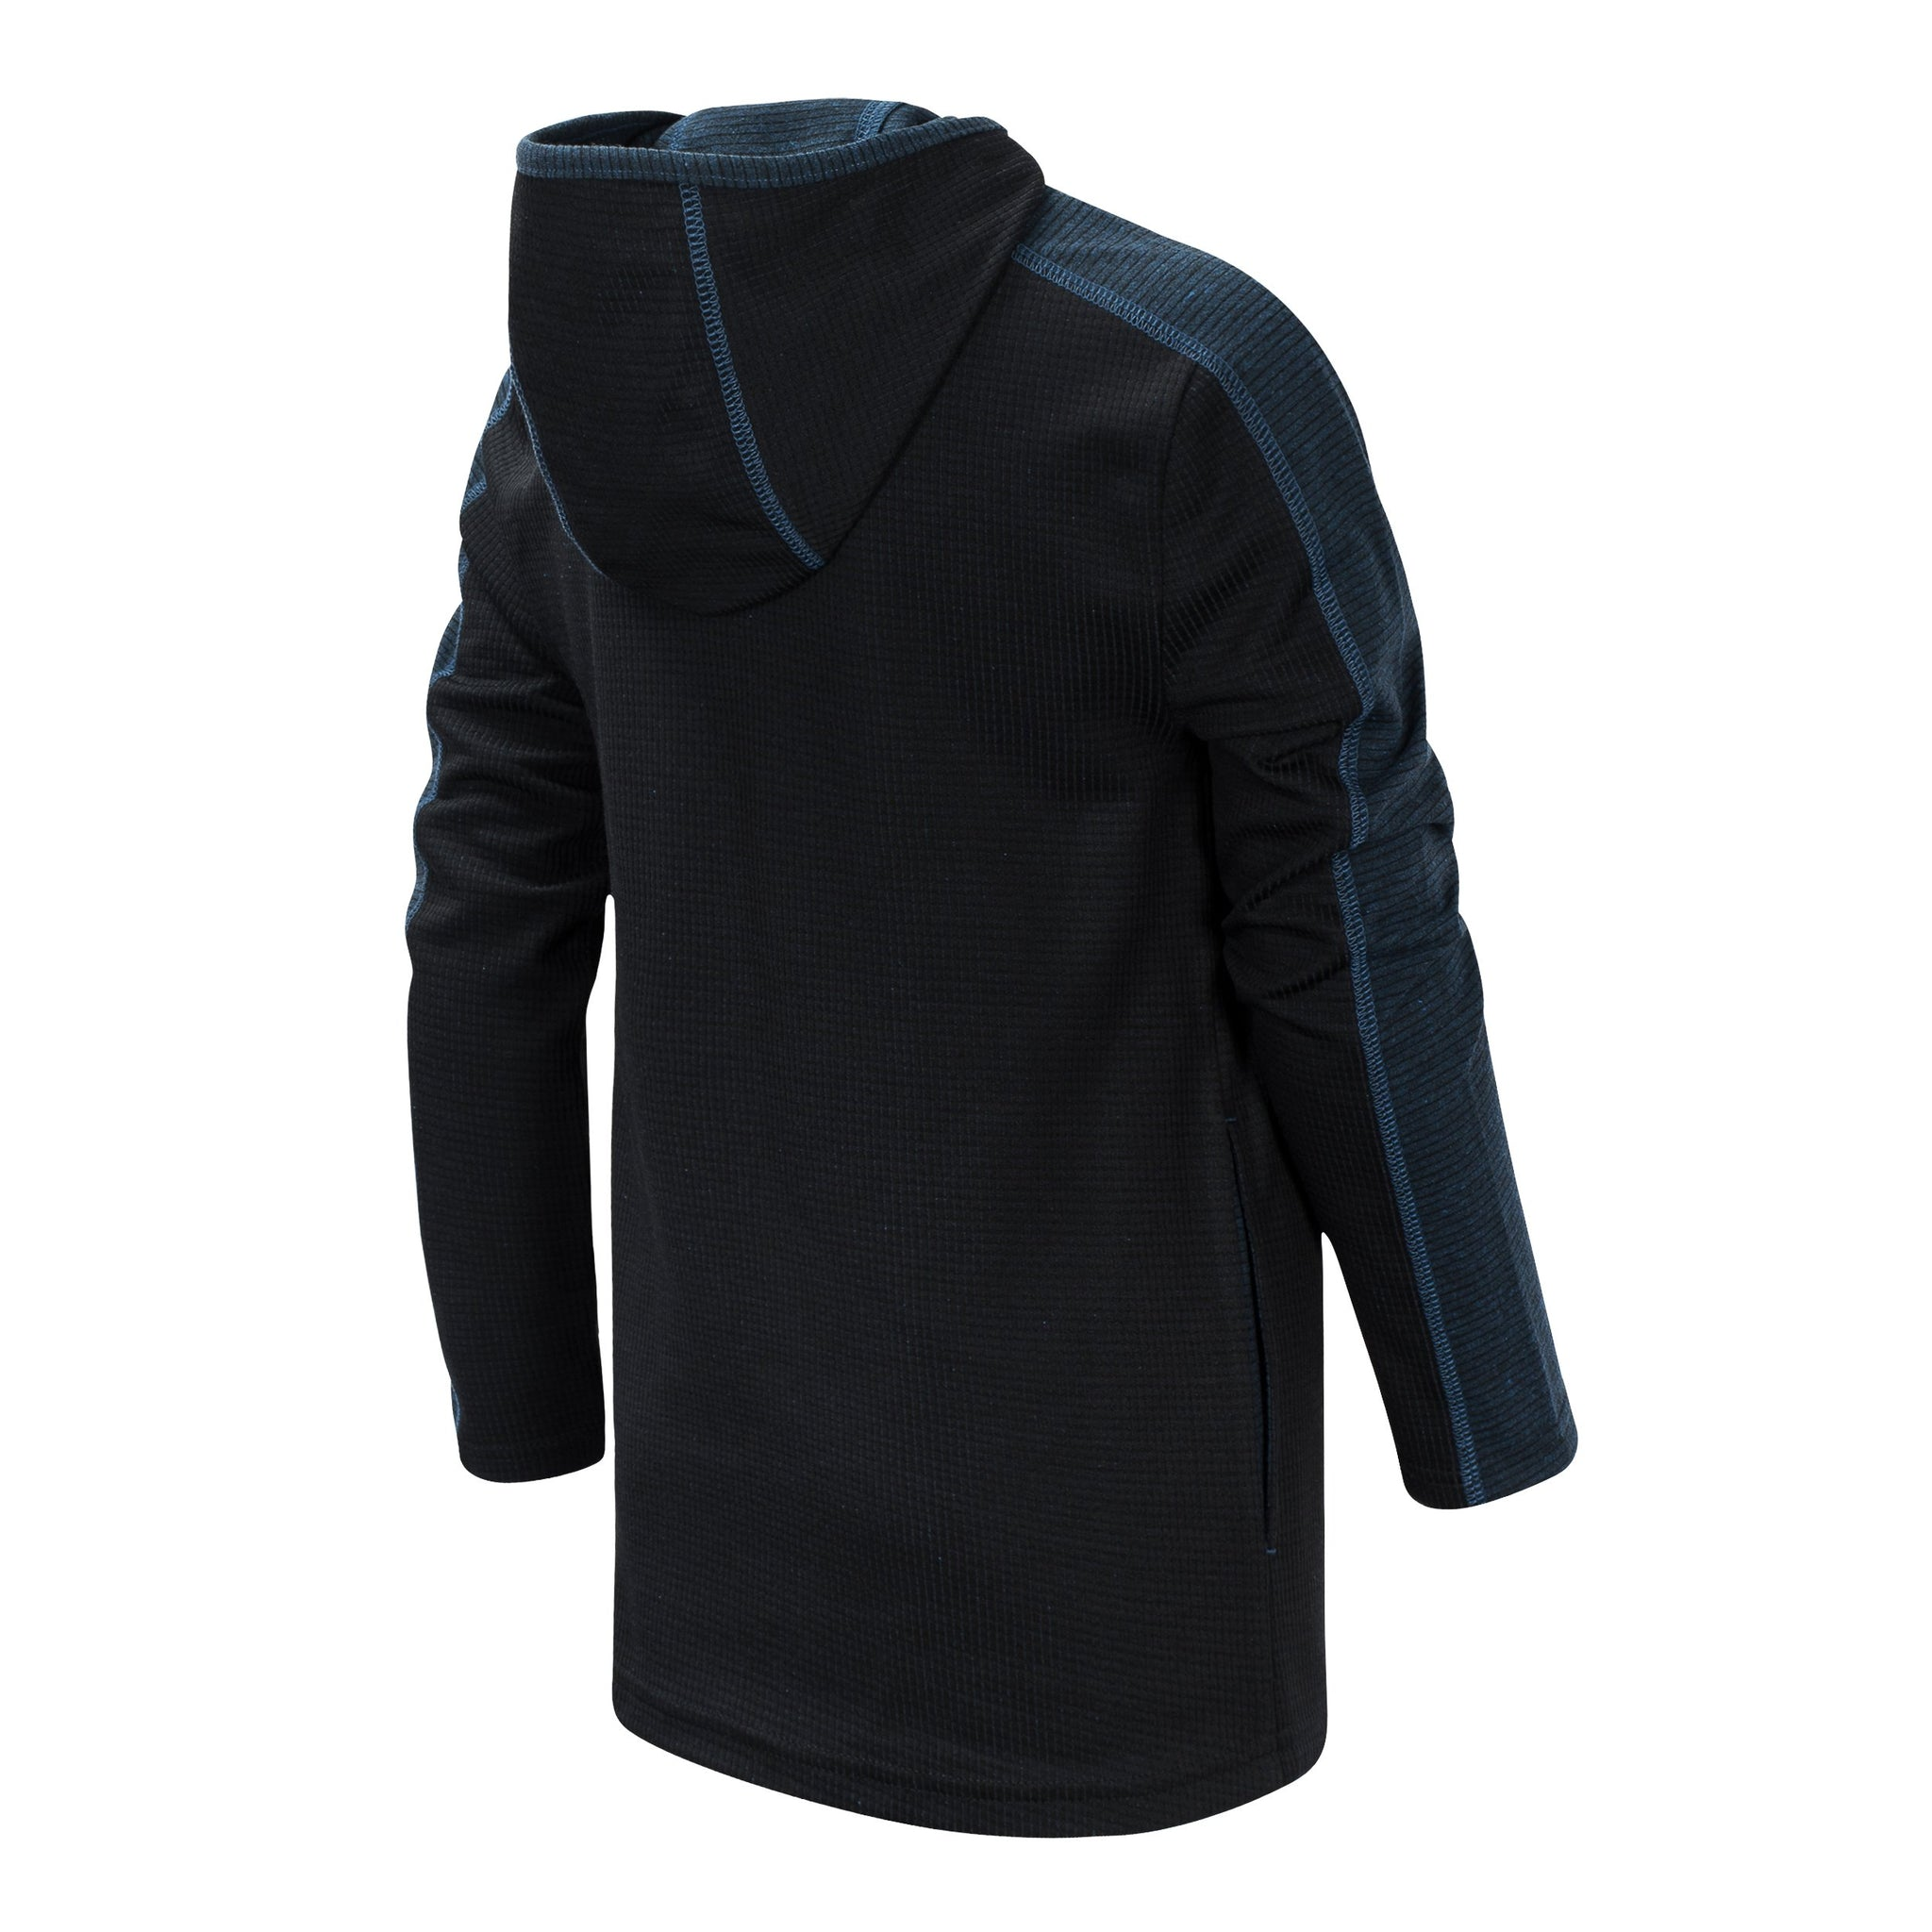 Boys' Black and Lapis Blue Hooded Pullover